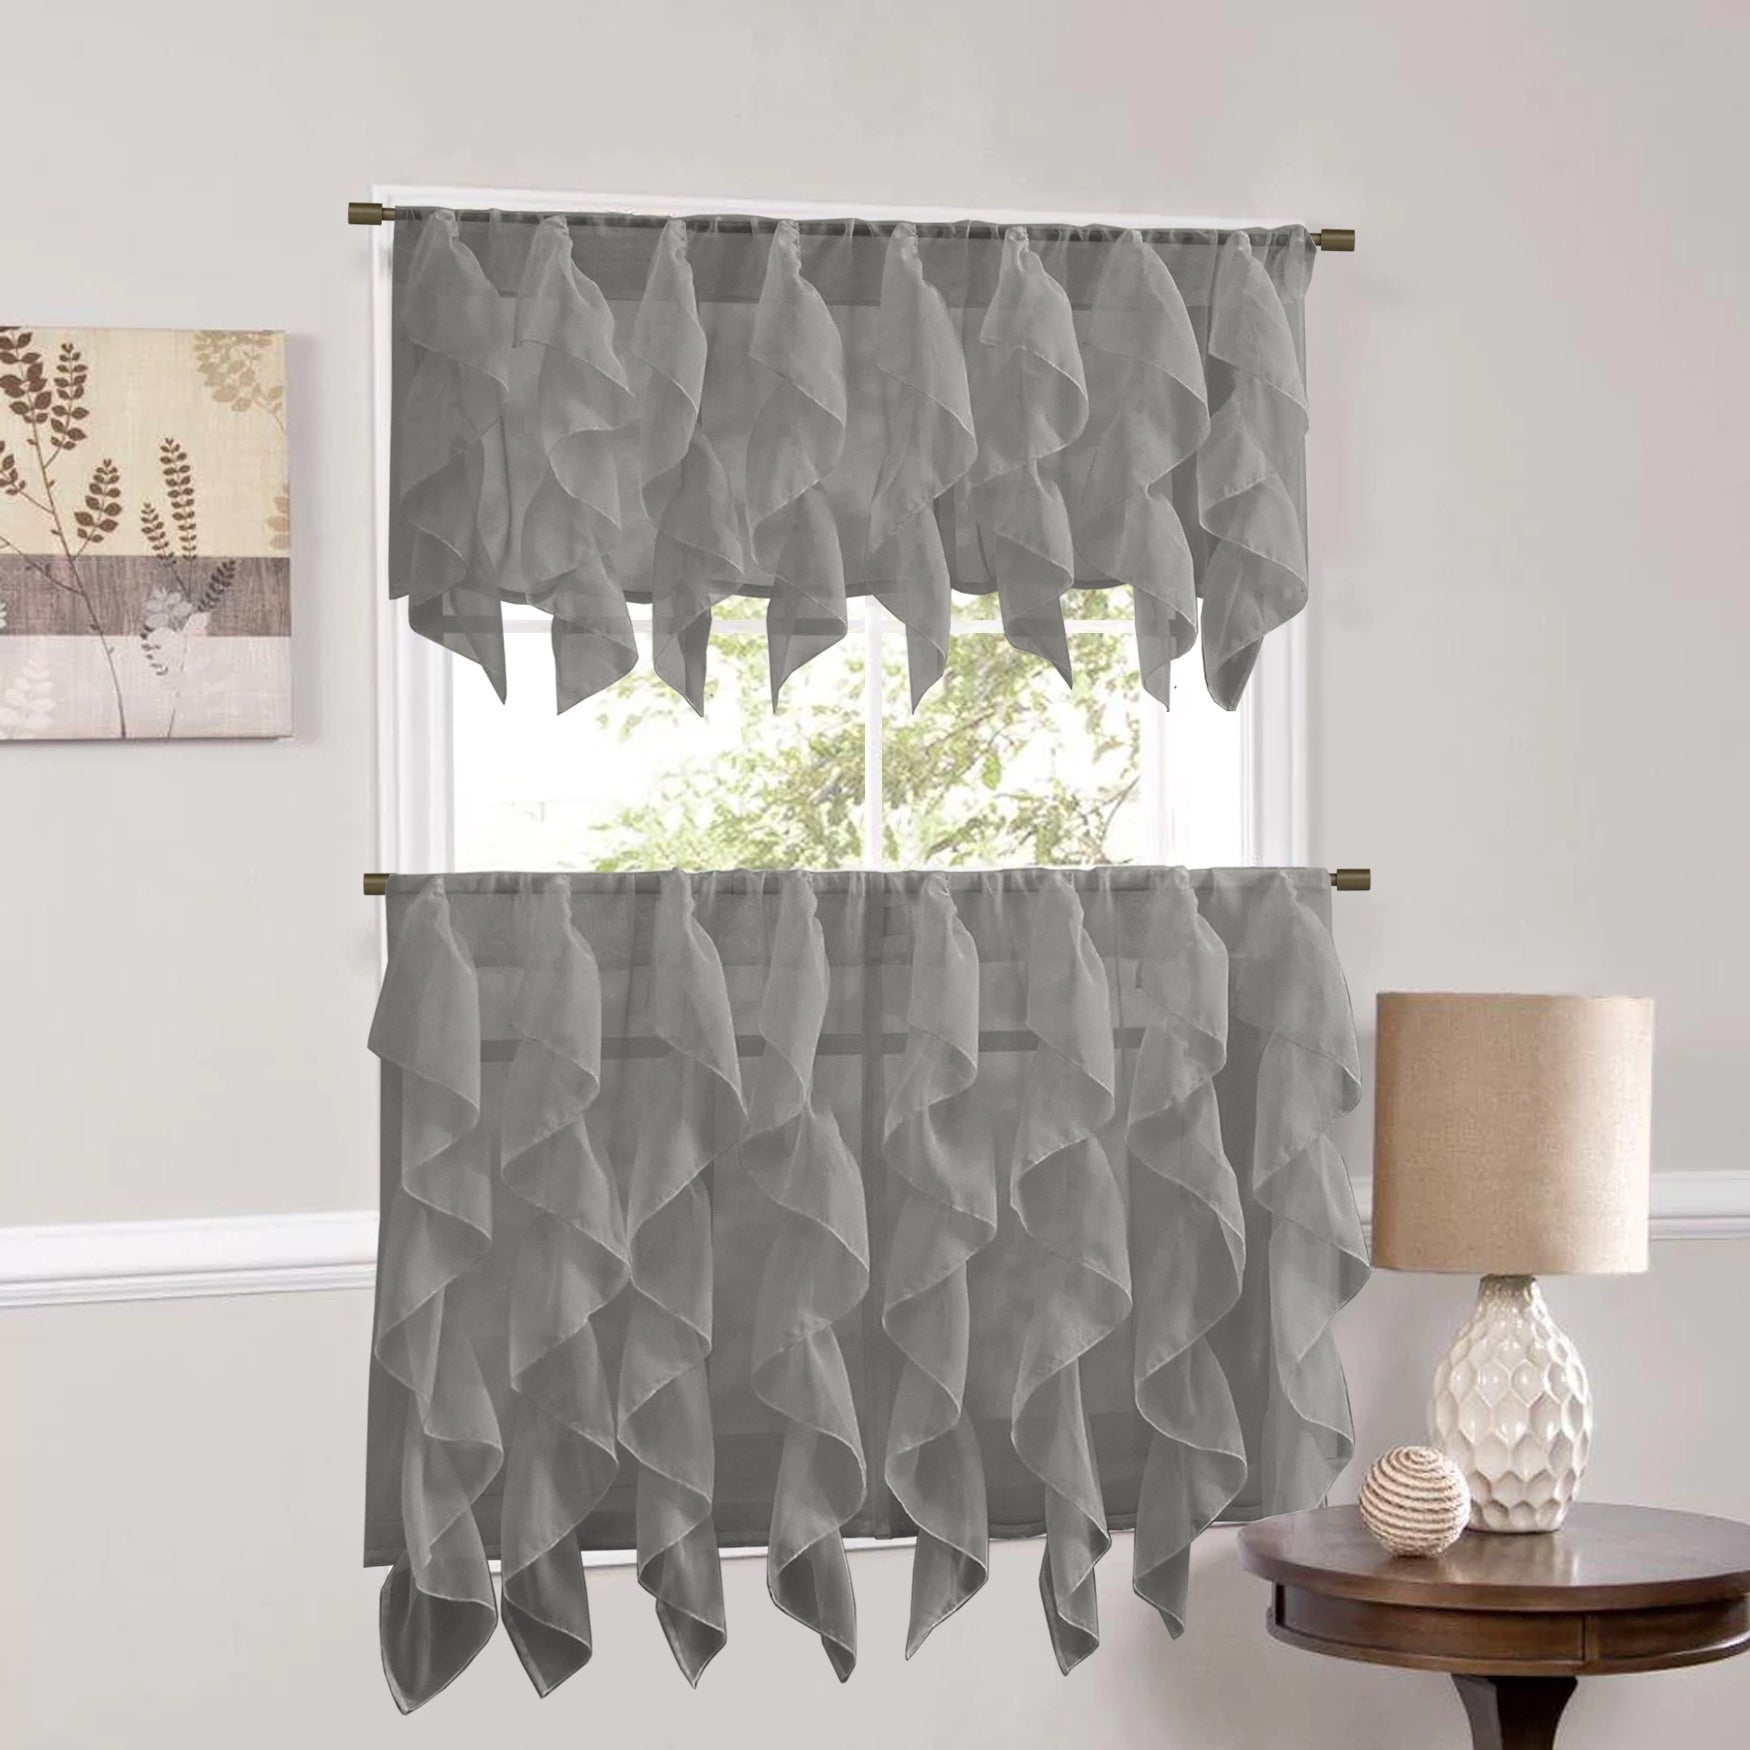 Sweet Home Collection Grey Vertical Ruffled Waterfall Valance And Curtain Tiers With Regard To Silver Vertical Ruffled Waterfall Valance And Curtain Tiers (View 10 of 20)